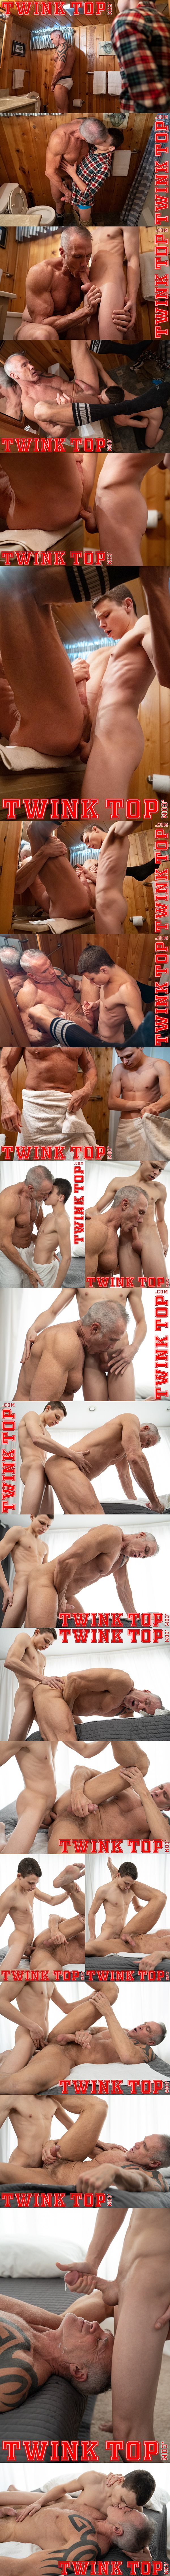 Skinny twink boy Austin Young barebacks tall daddy coach Dallas Steele before he gives Dallas a facial in Sports Camp Newbie at Twinktop 01